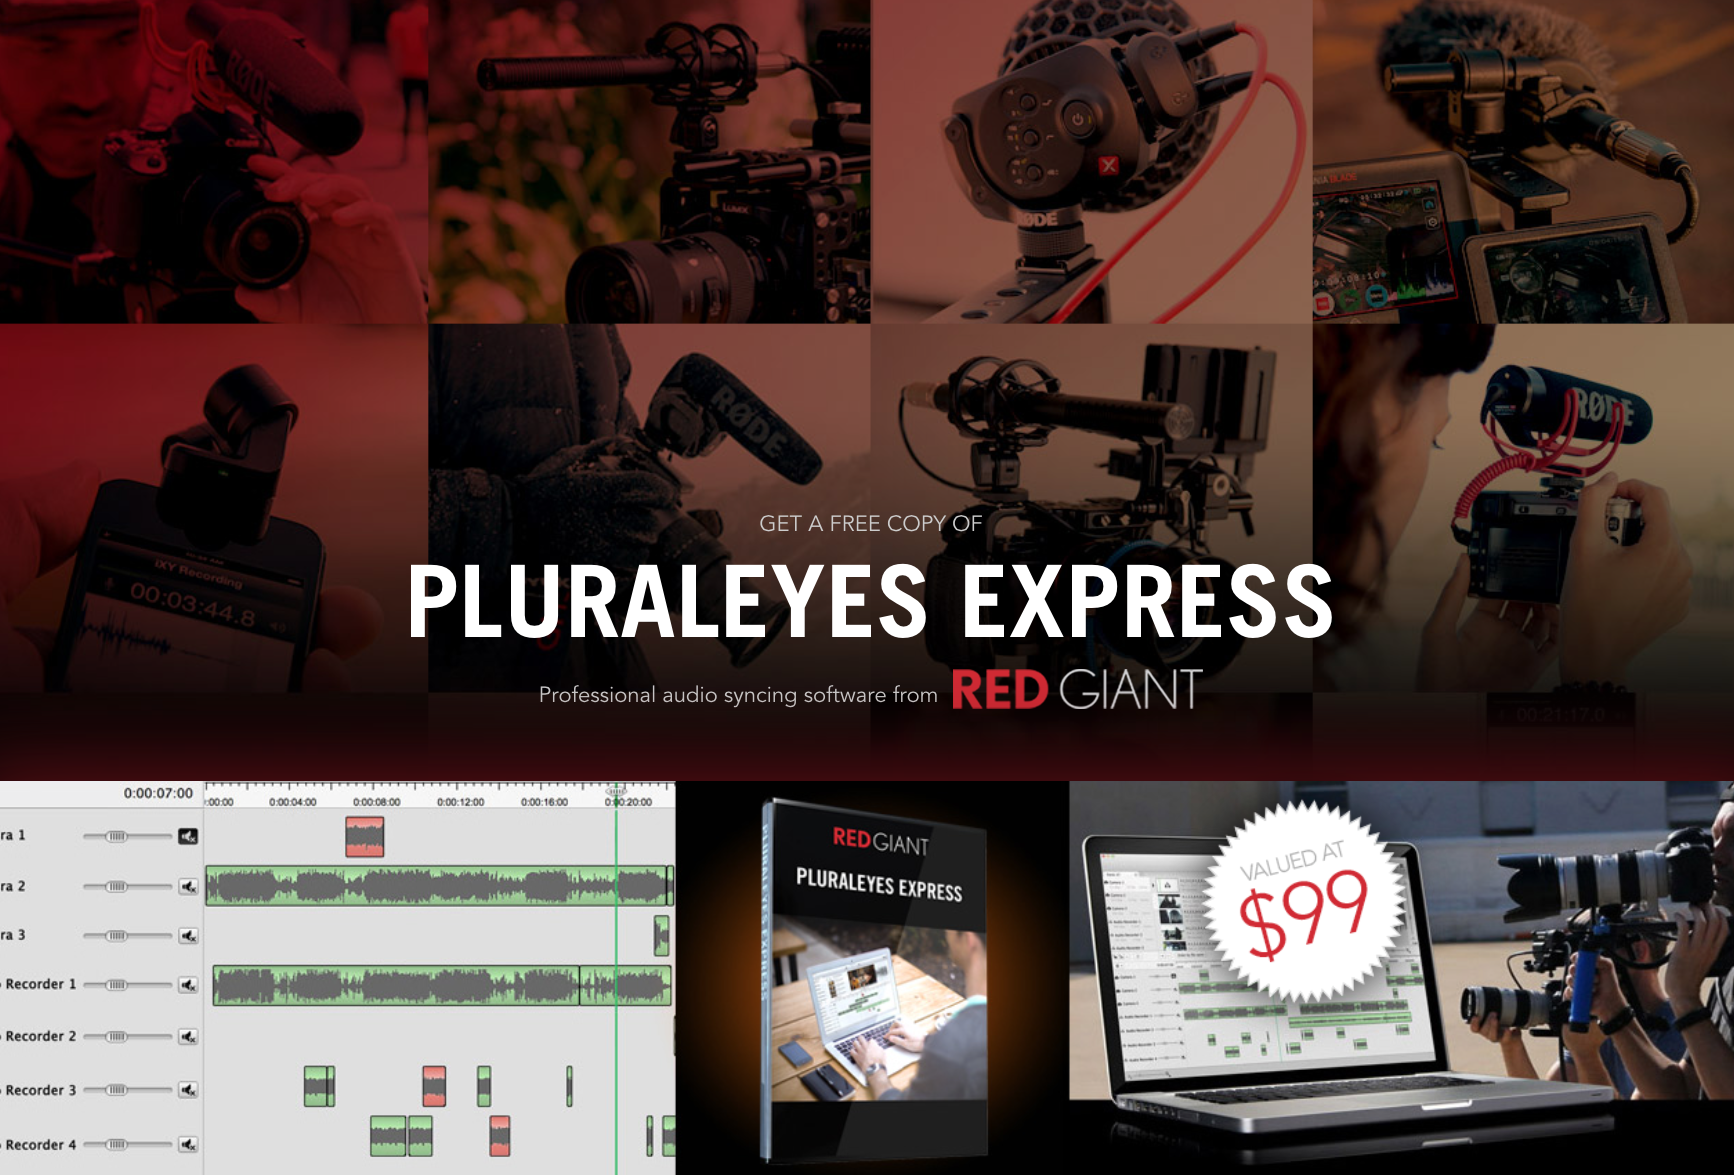 Purchase a RØDE microphone between April and December 2015 and get a free copy of PluralEyes Express